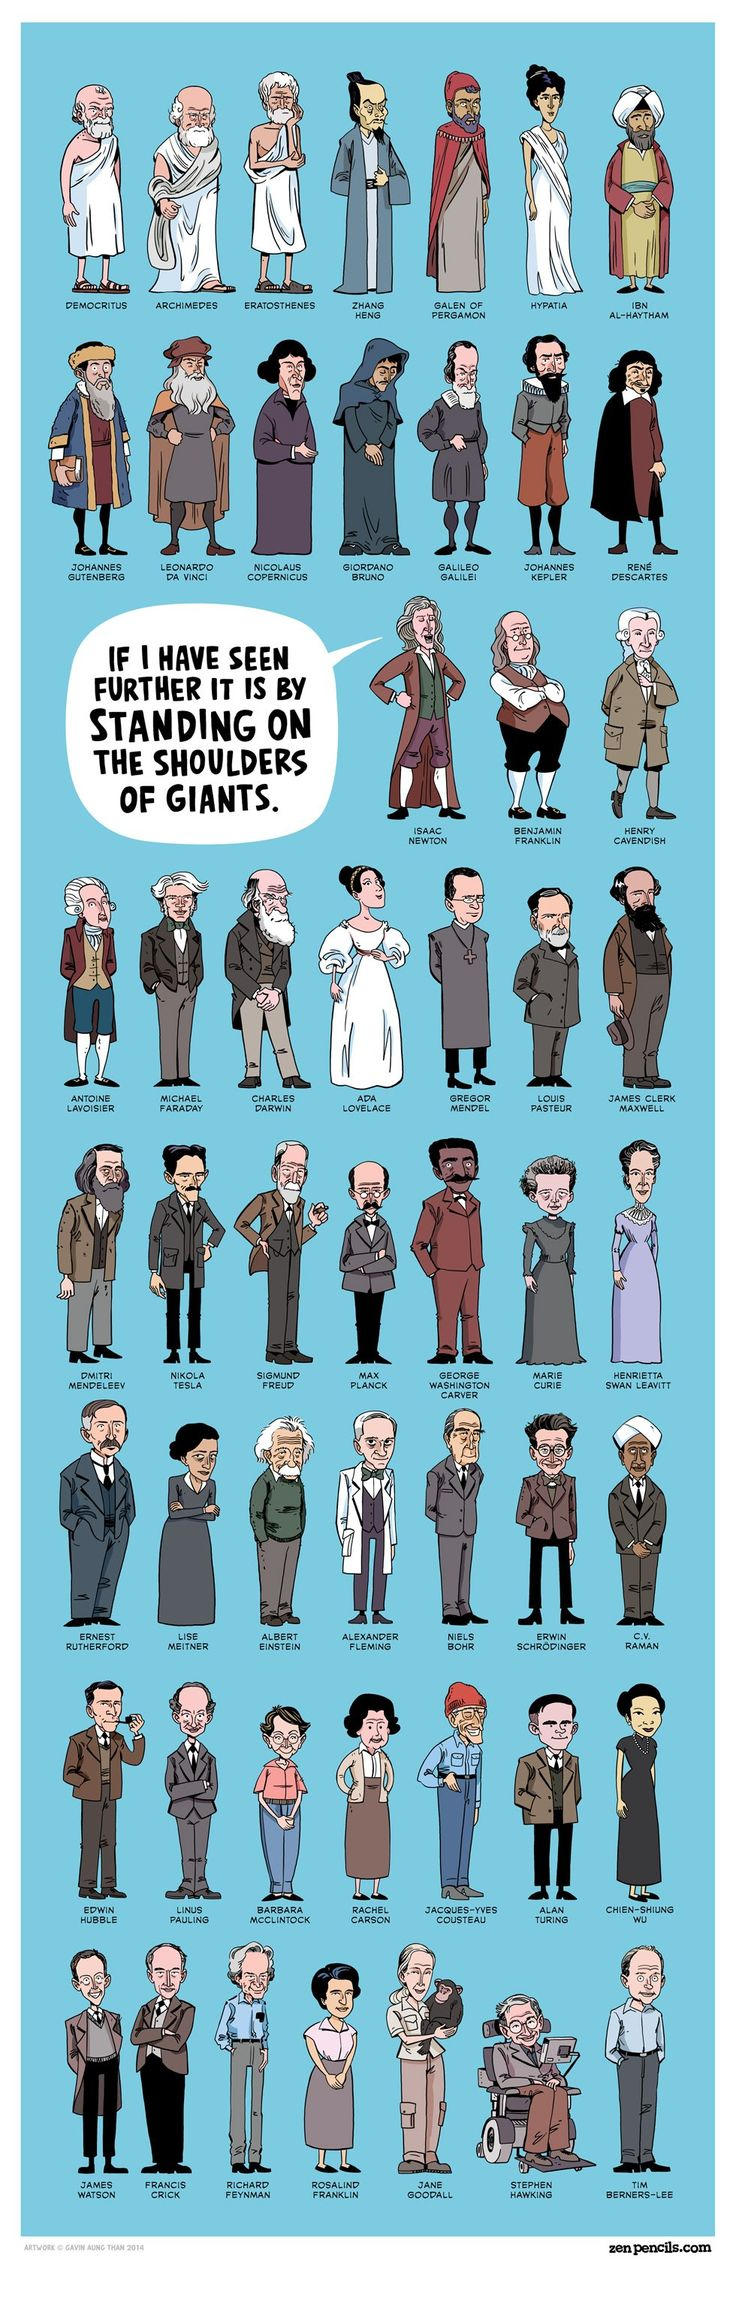 ZEN PENCILS » 152. ON THE SHOULDERS OF GIANTS: The science all-stars poster